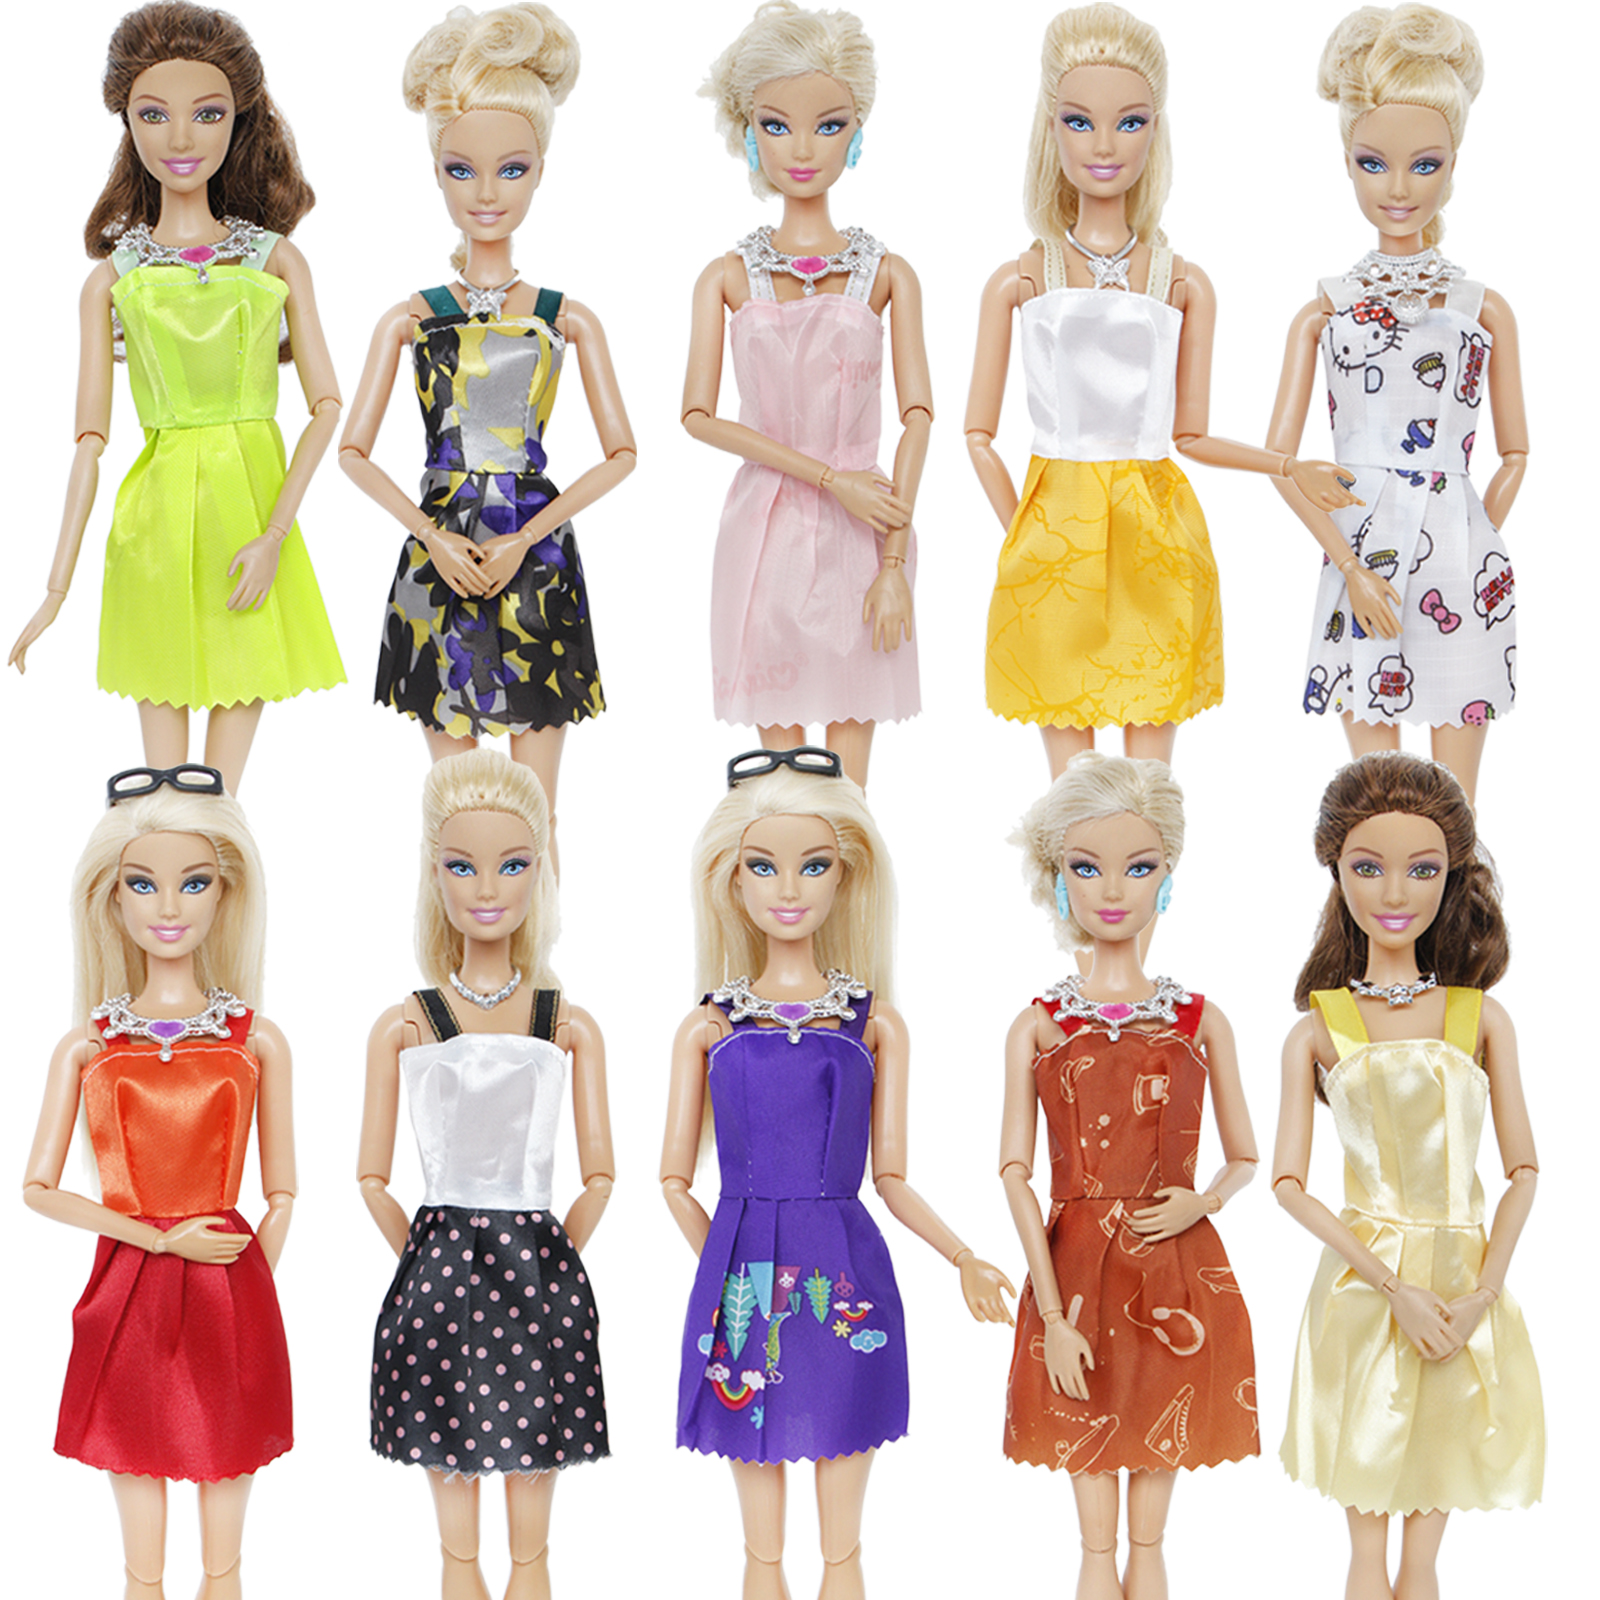 Random 18 Pcs = 12x Mixed Style Mini Gown Party Dress + 6x Plastic Fashion Necklaces Skirt Accessories Clothes For Barbie Doll